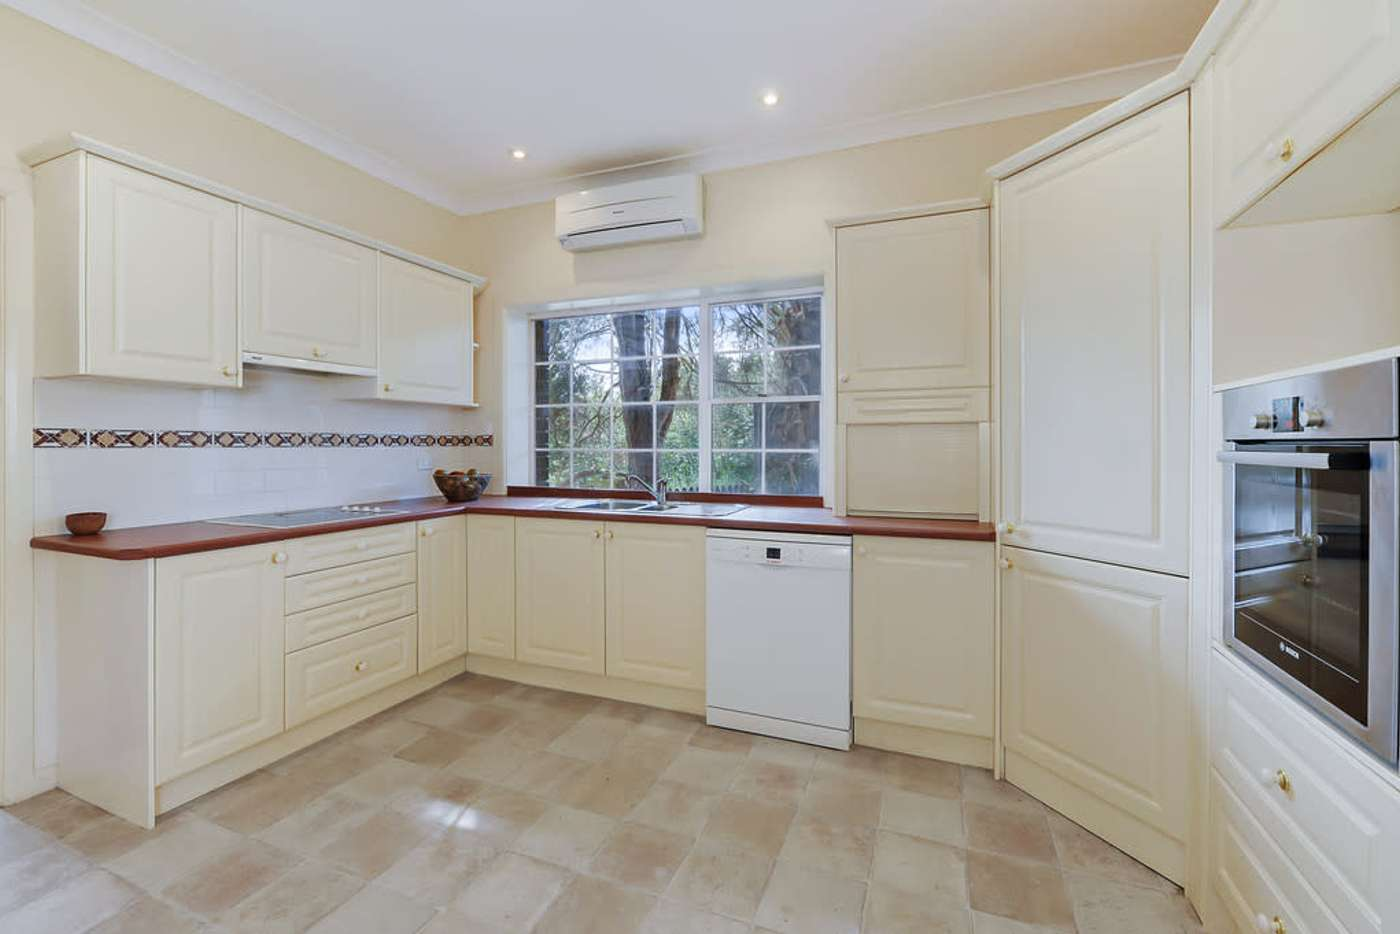 Sixth view of Homely house listing, 9 Glenview Road, Mount Kuring-gai NSW 2080